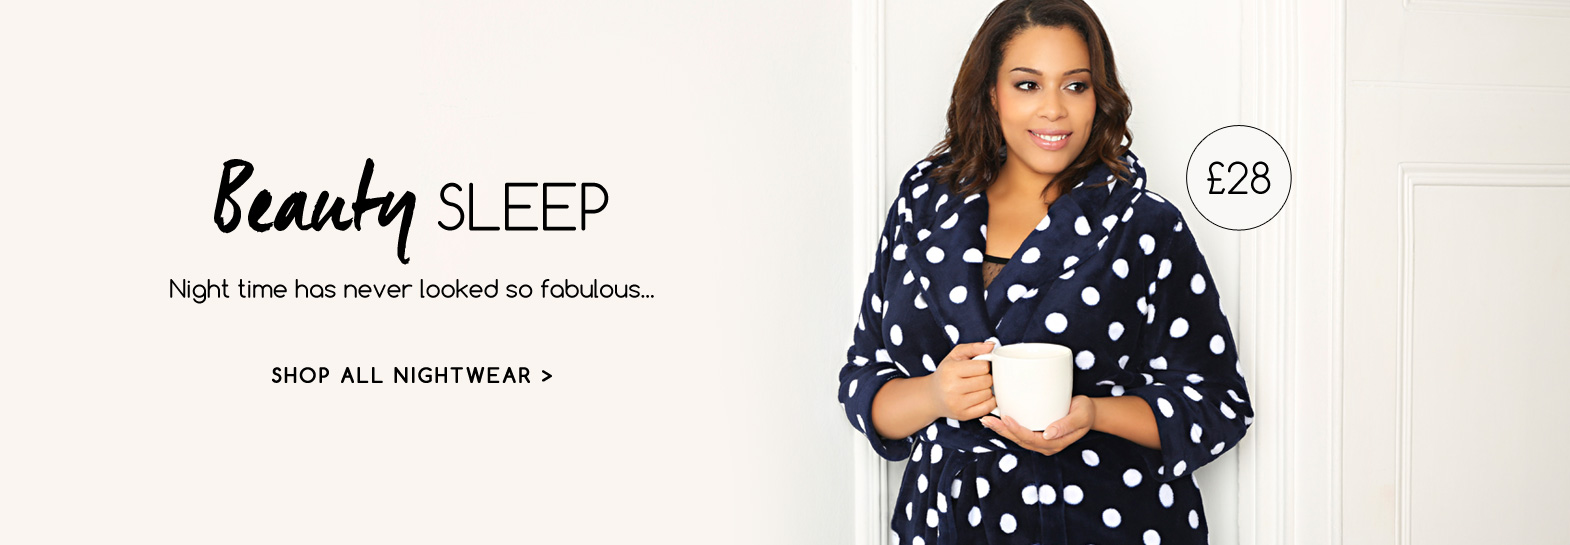 Shop all nightwear >